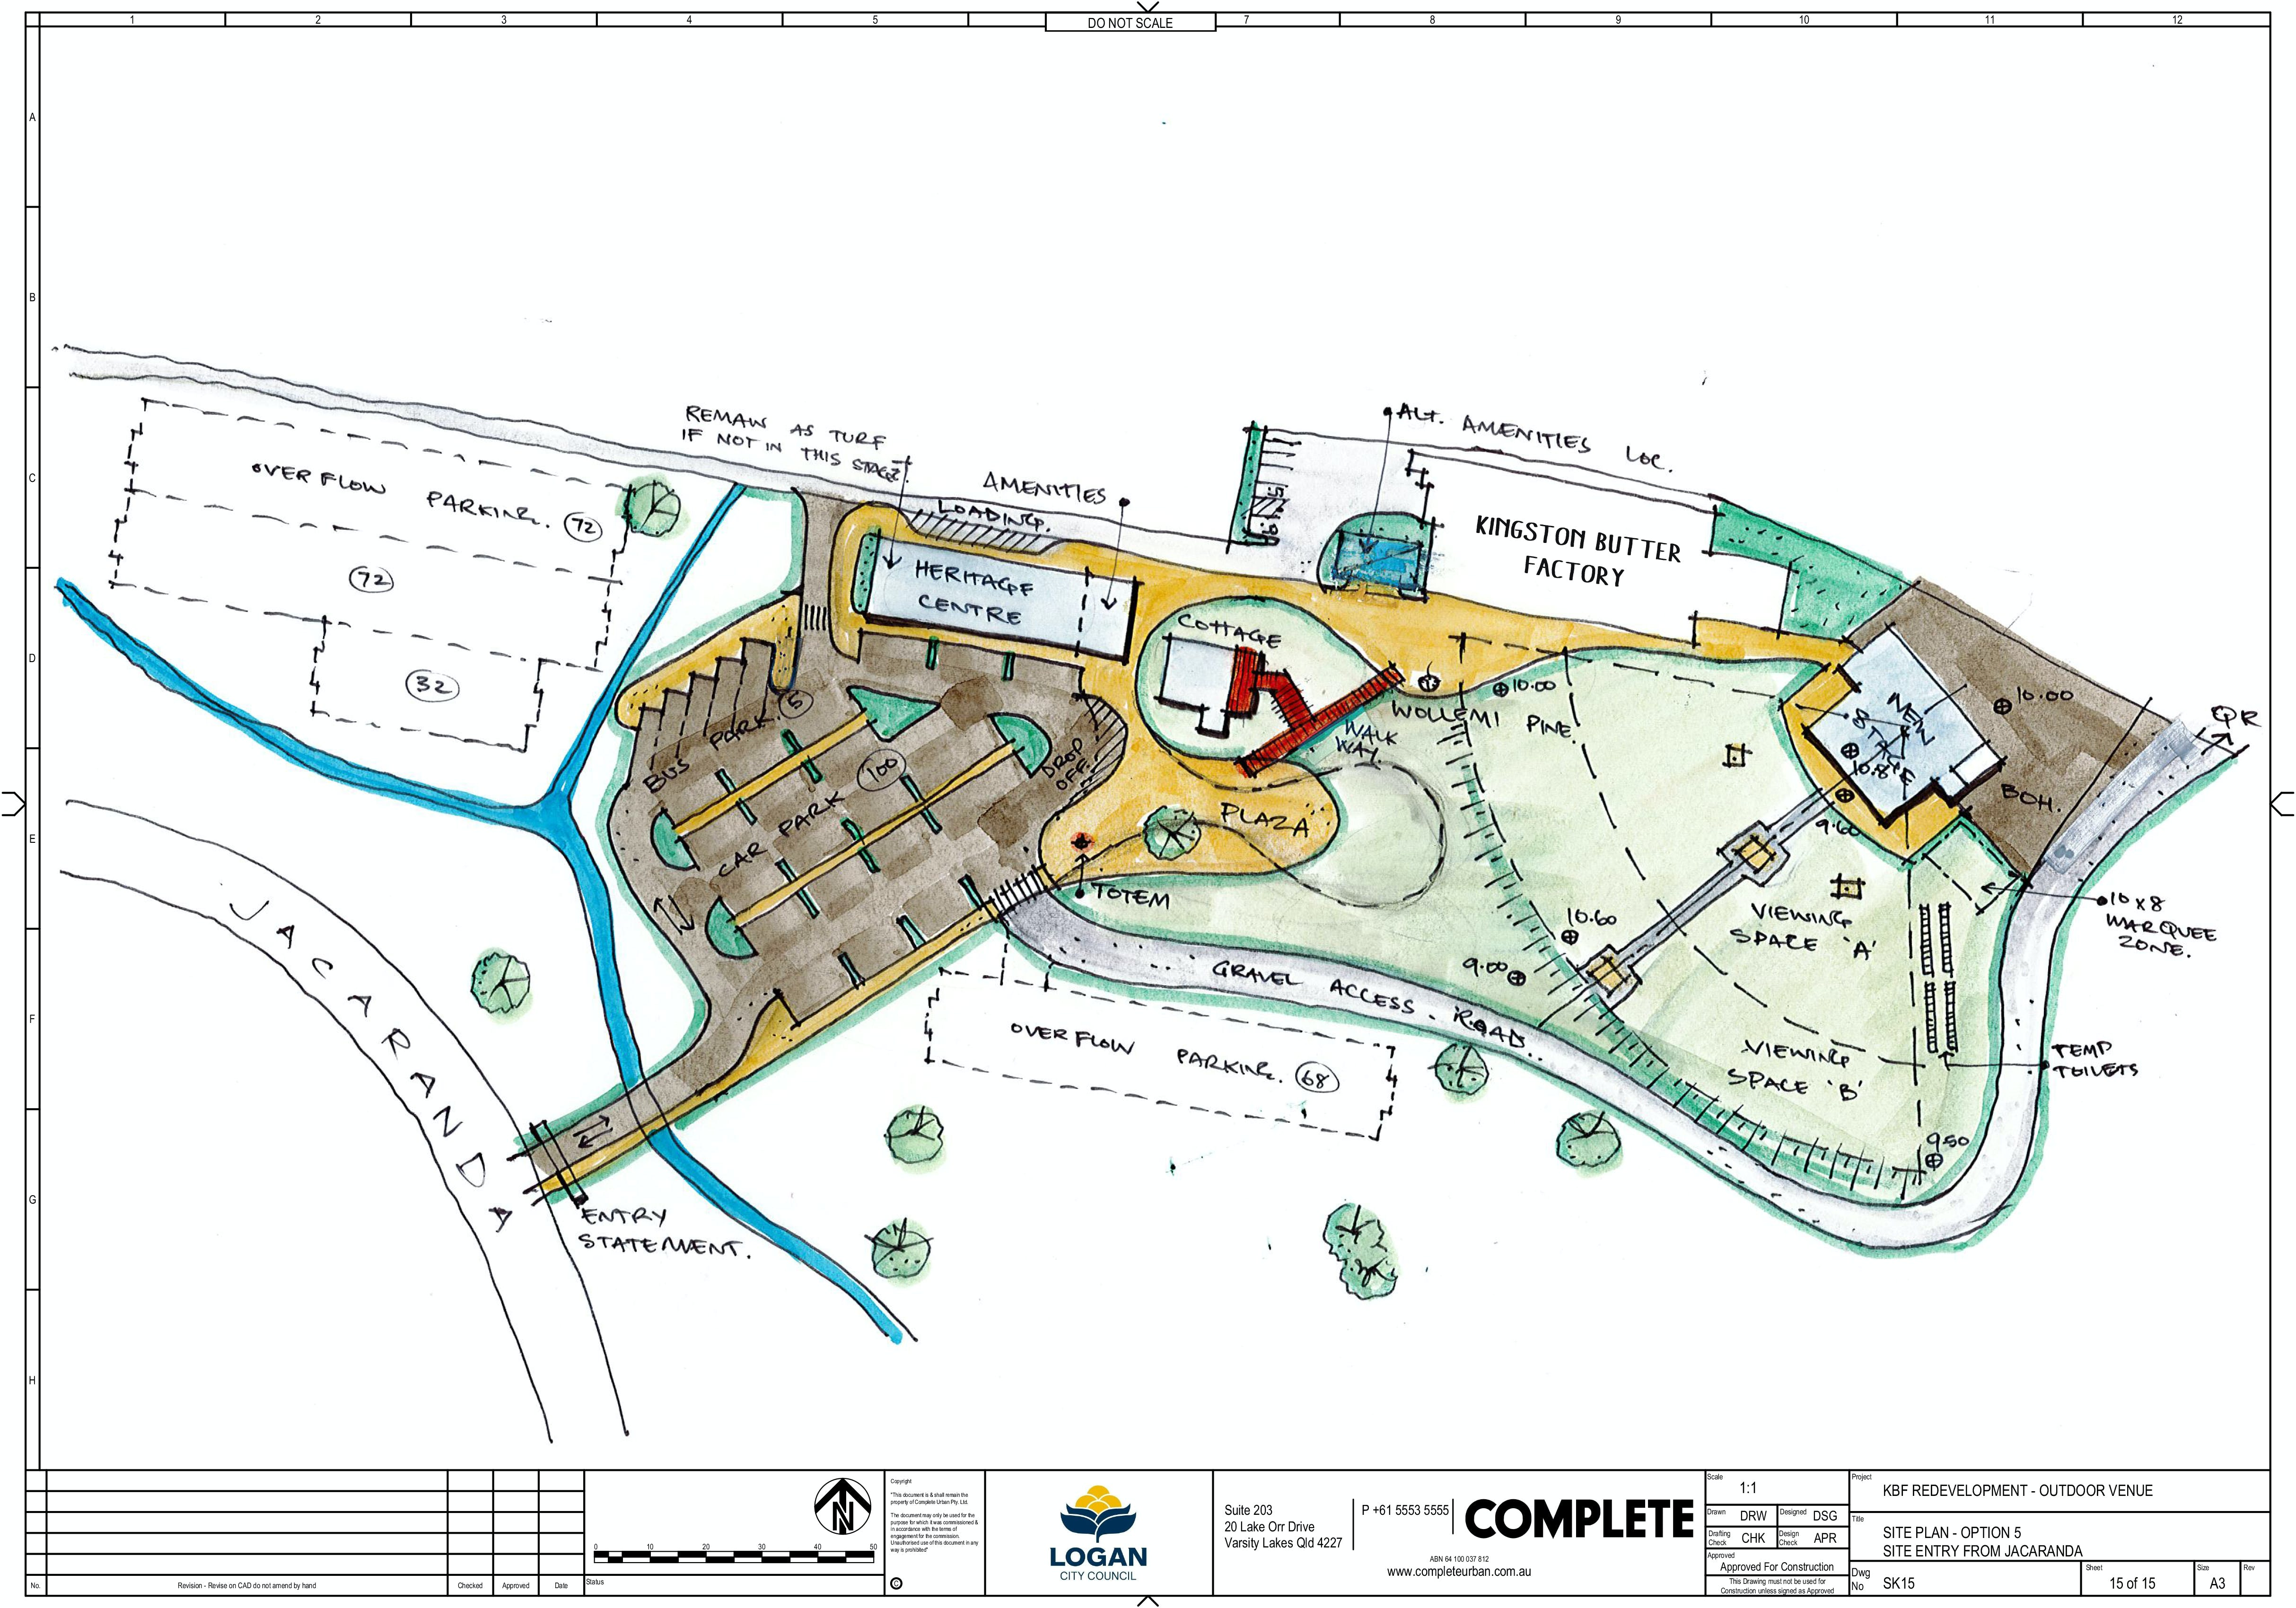 Draft Site Plan - Aug19